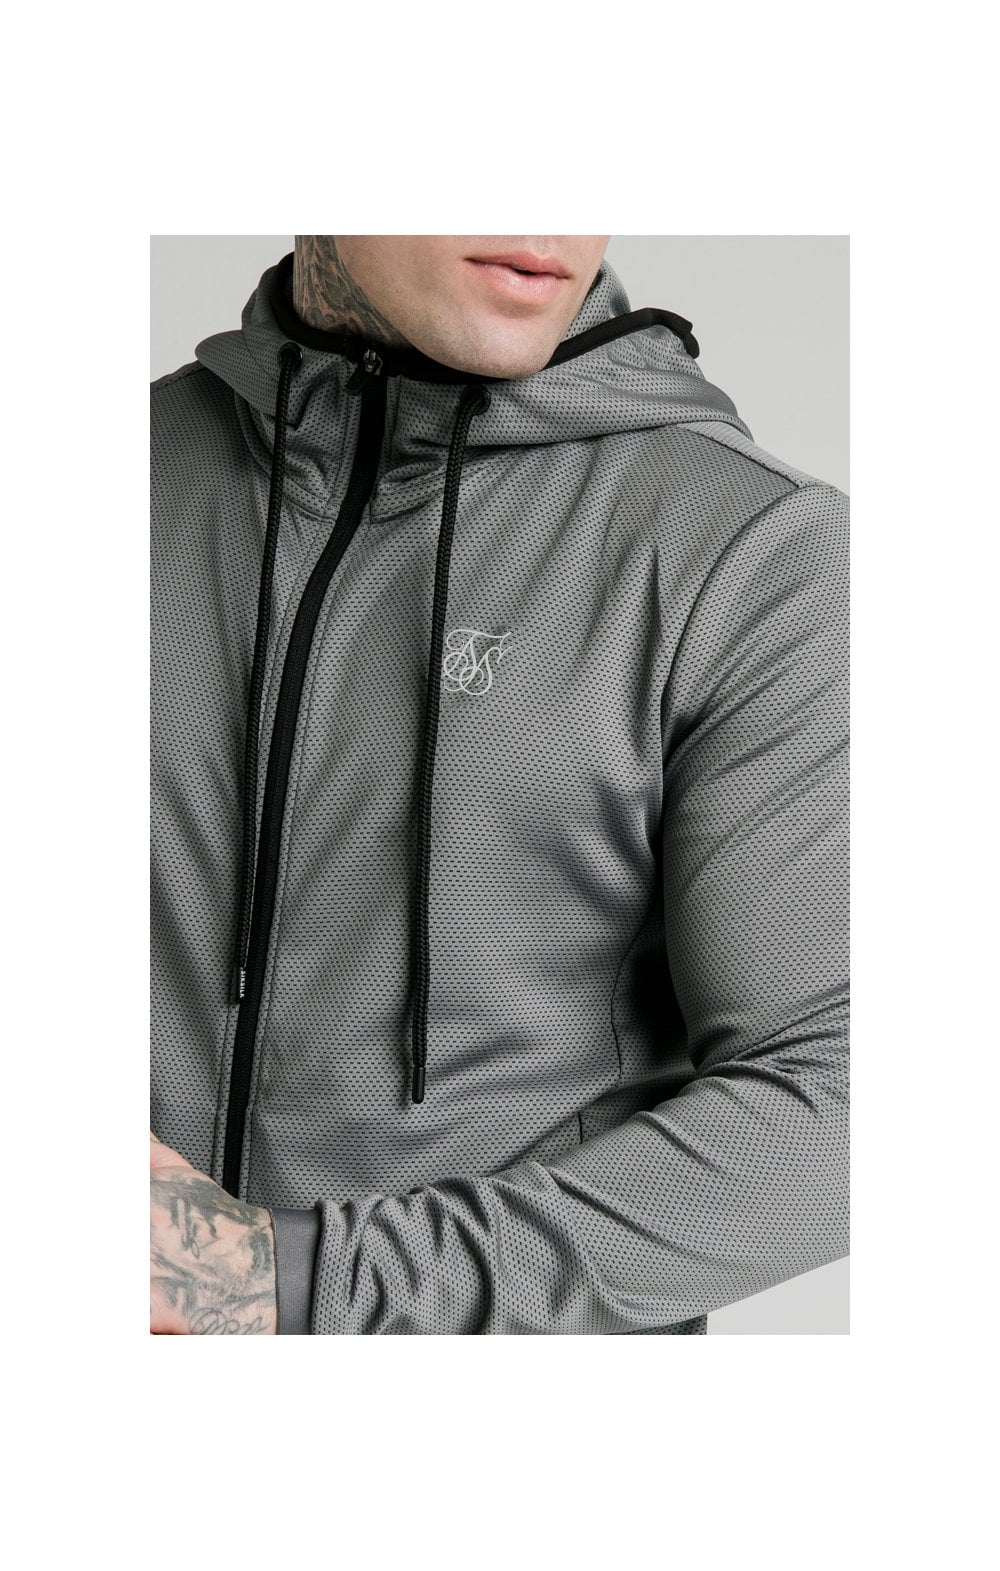 SikSilk Agility Active Zip Through Hoodie - Grey MEN SIZES TOP: Small